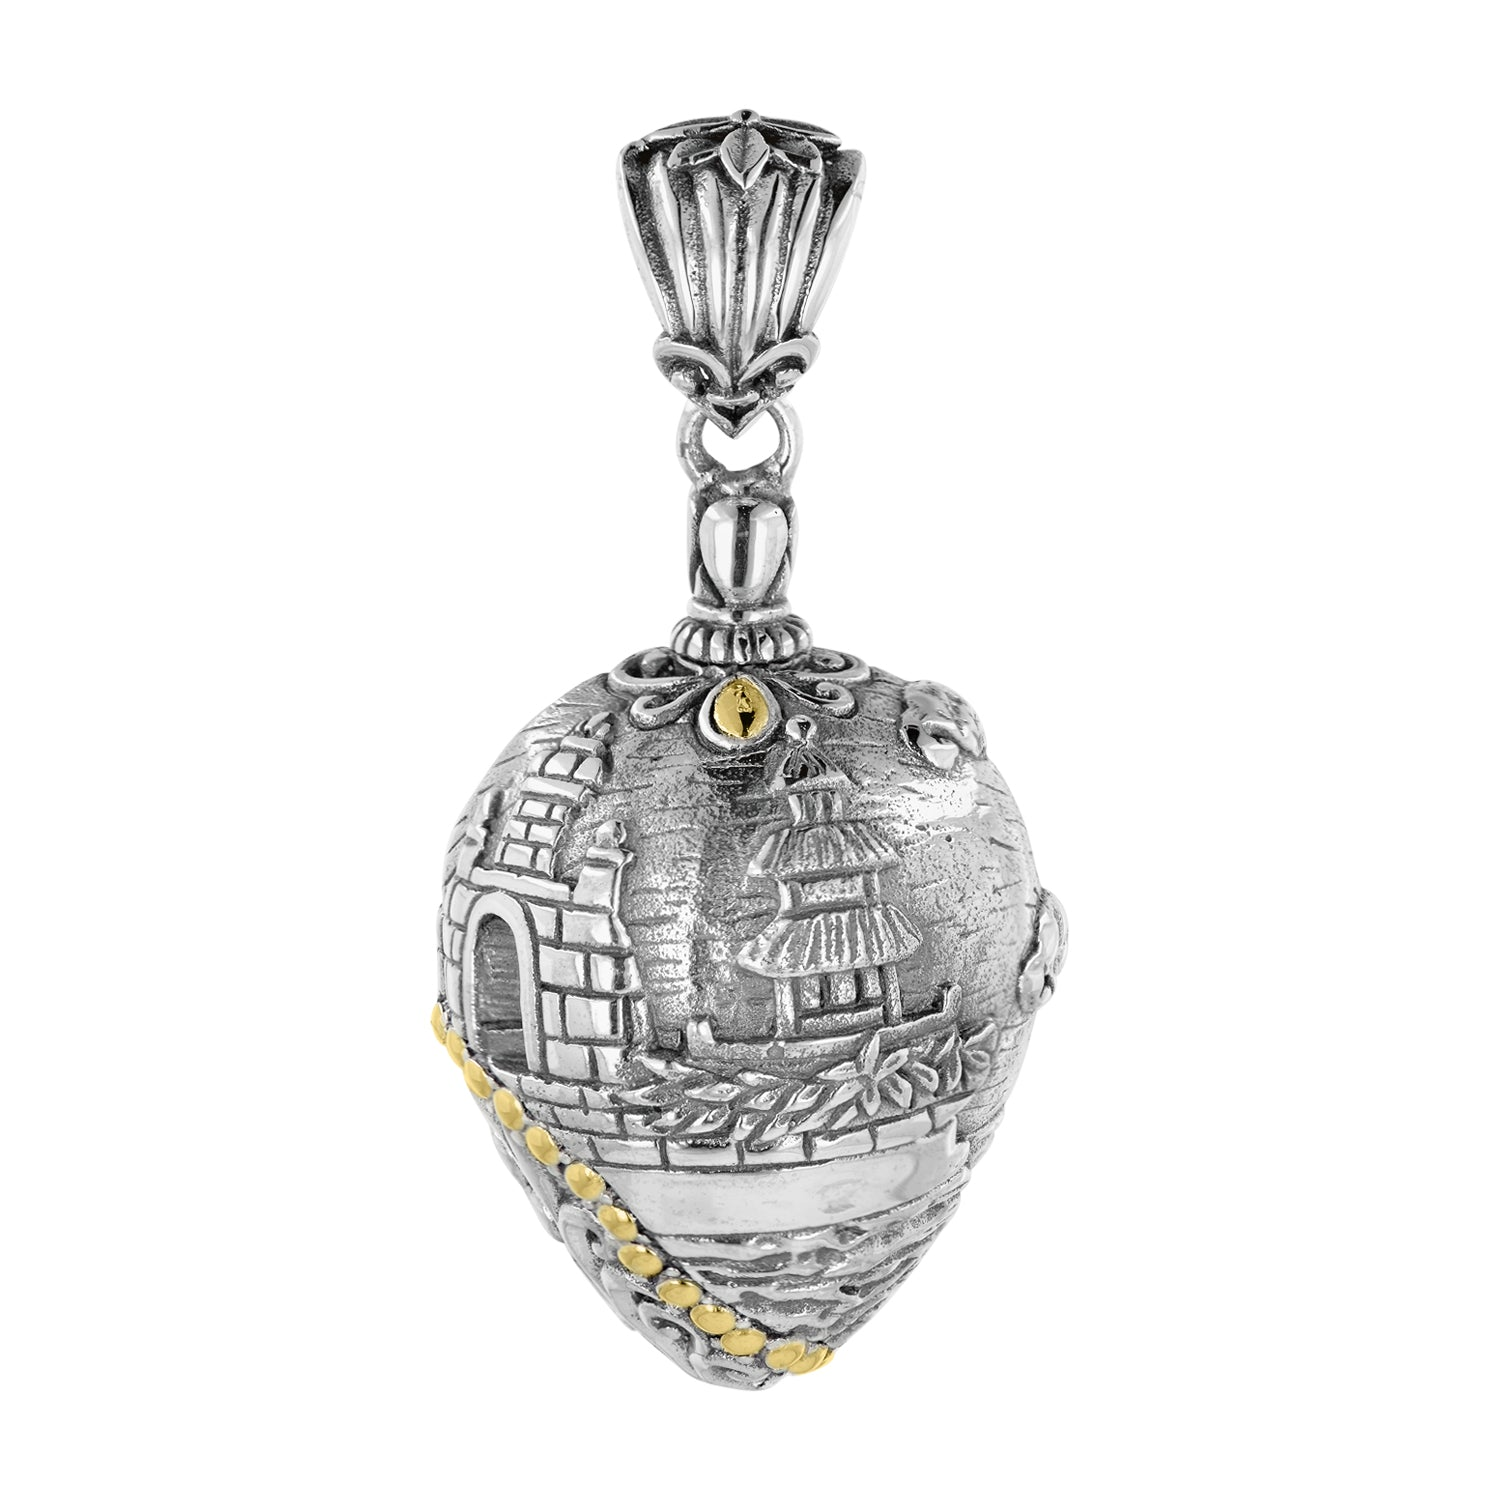 Bali Sterling Silver Uluwatu Temple Amulet Pendant with 18K Gold Accents